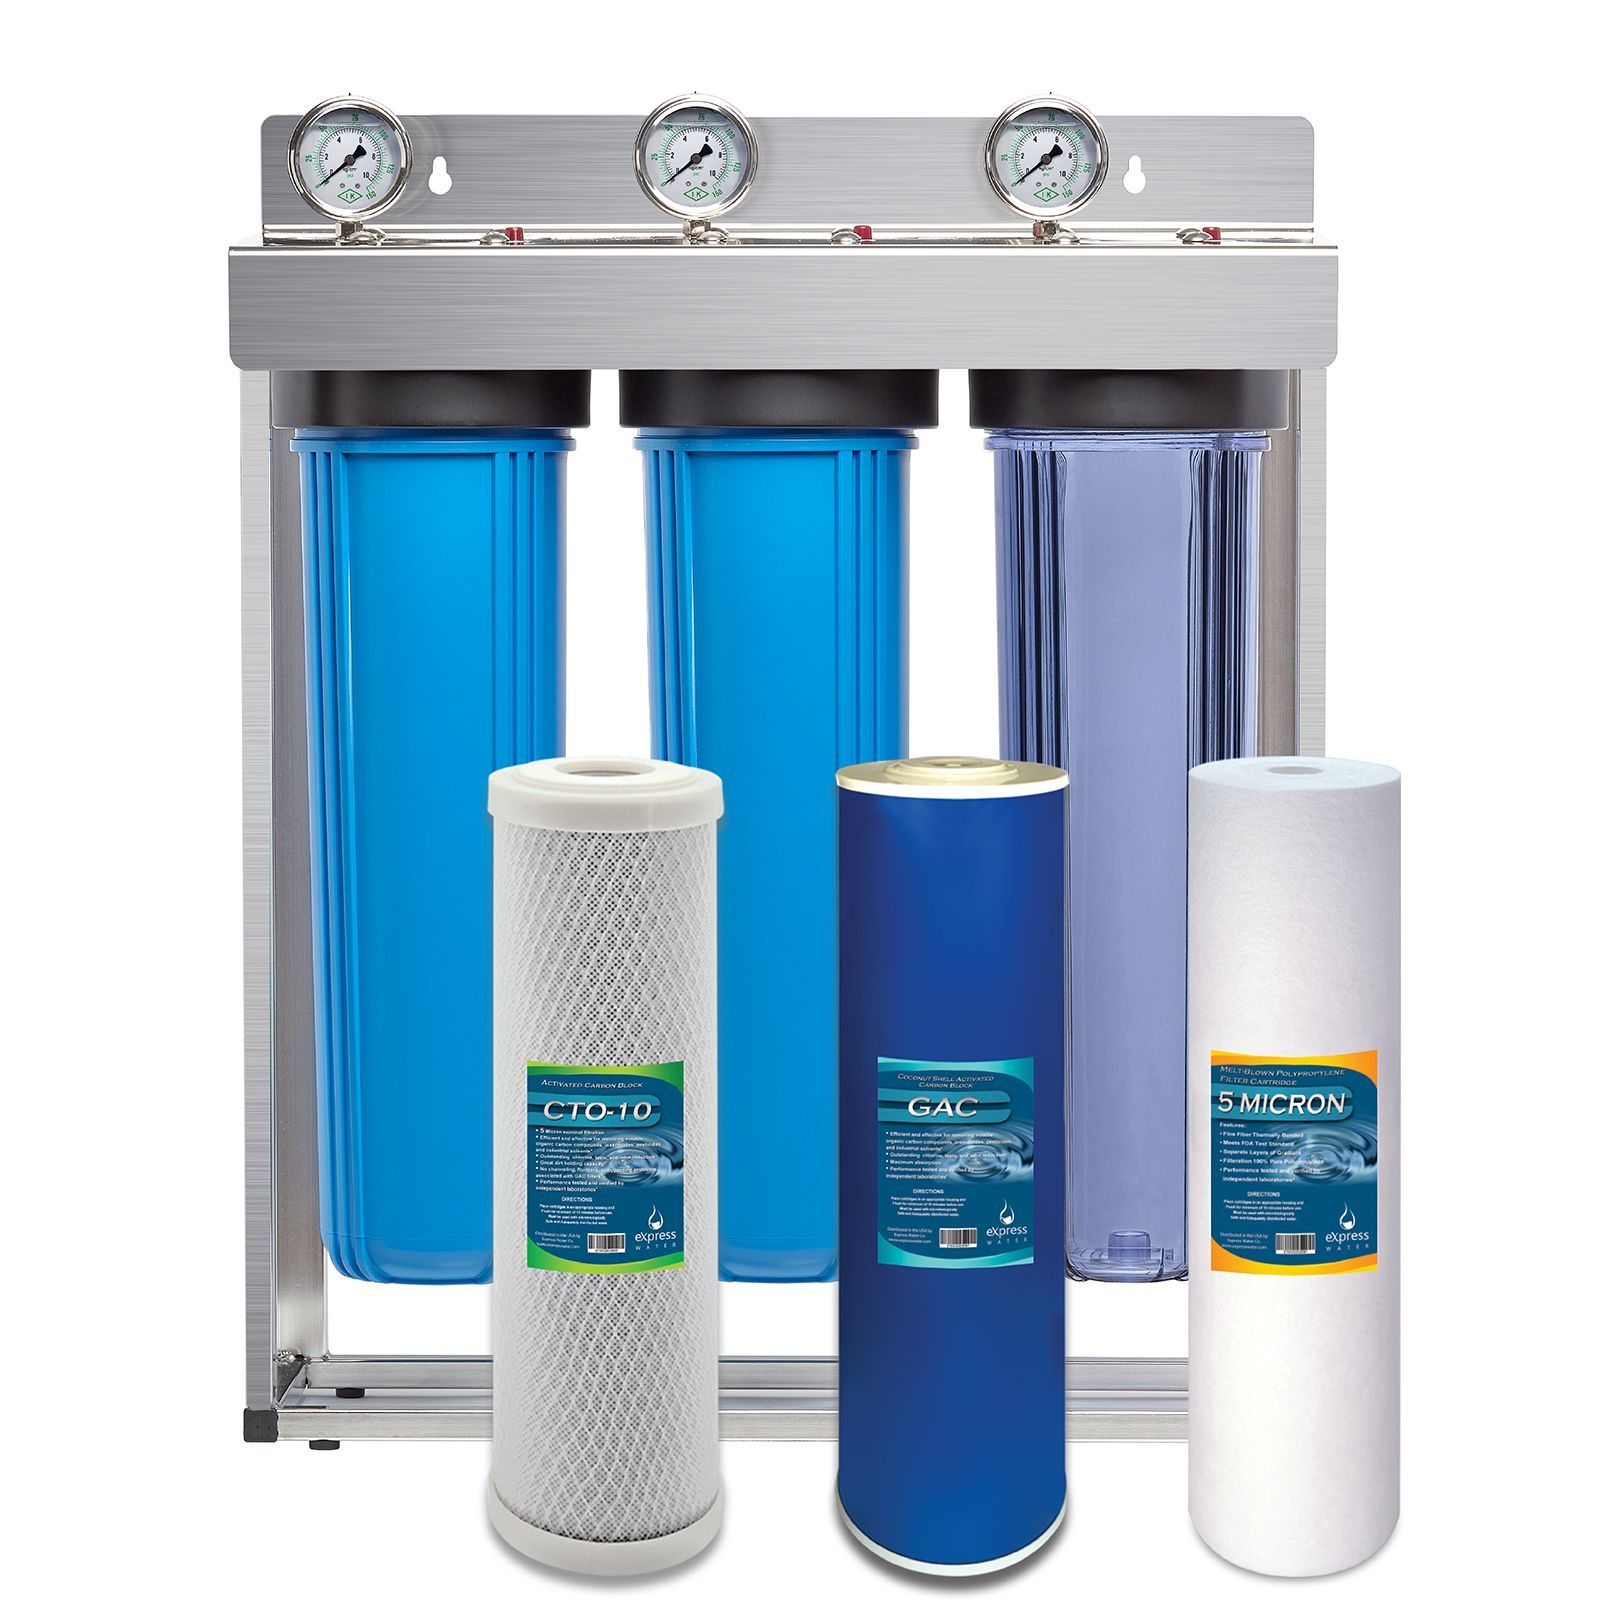 Whole House Water Filter 3 Stage Home Water Filtration System Sediment Charcoal Carbon Filters Home Water Filtration Whole House Water Filter Water Filter